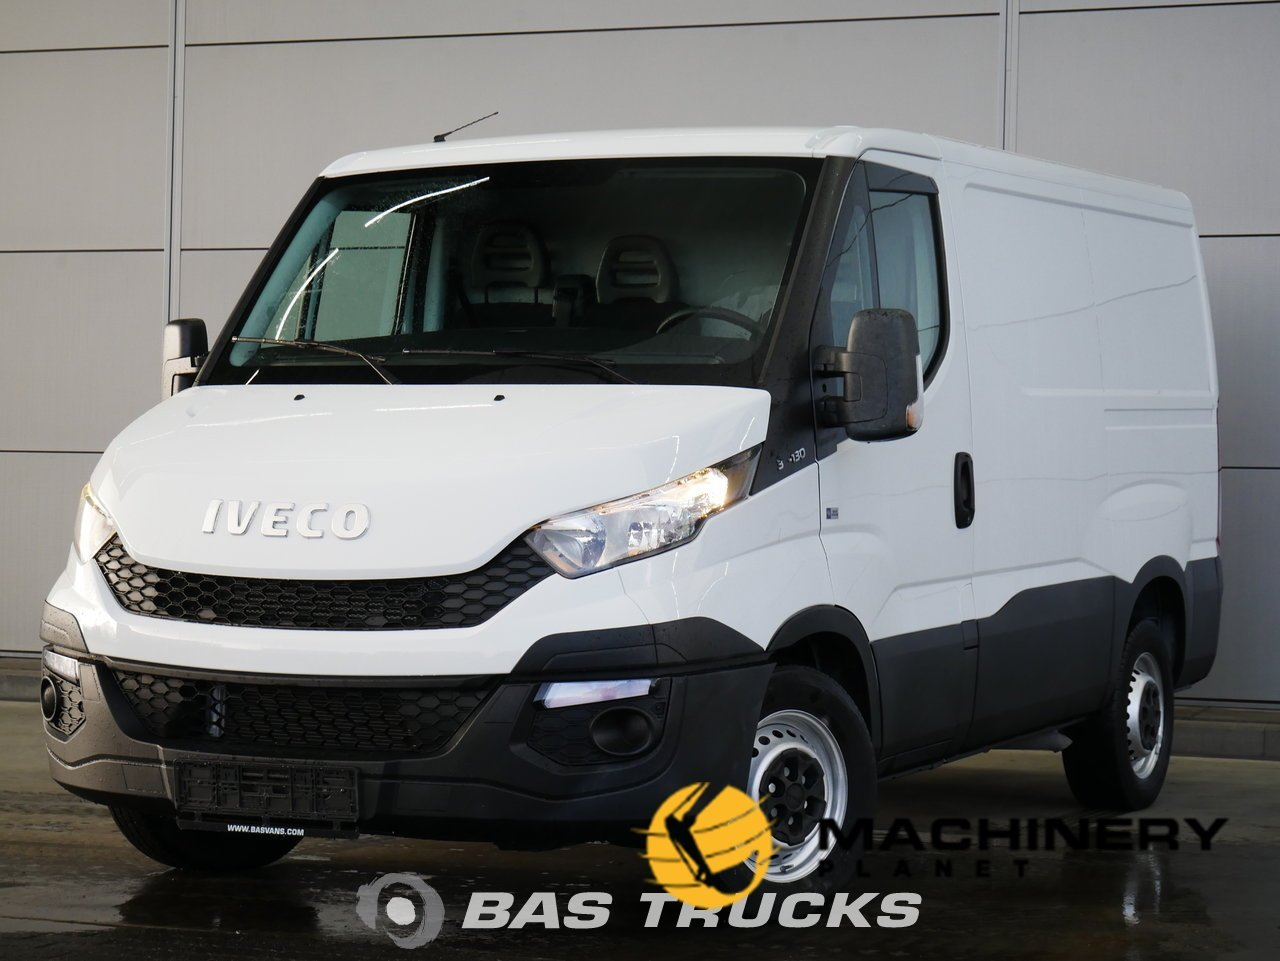 Used-Light-commercial-vehicle-IVECO-Daily-2016_147722_1-1554203648814_5ca34400c6a29-1.jpg